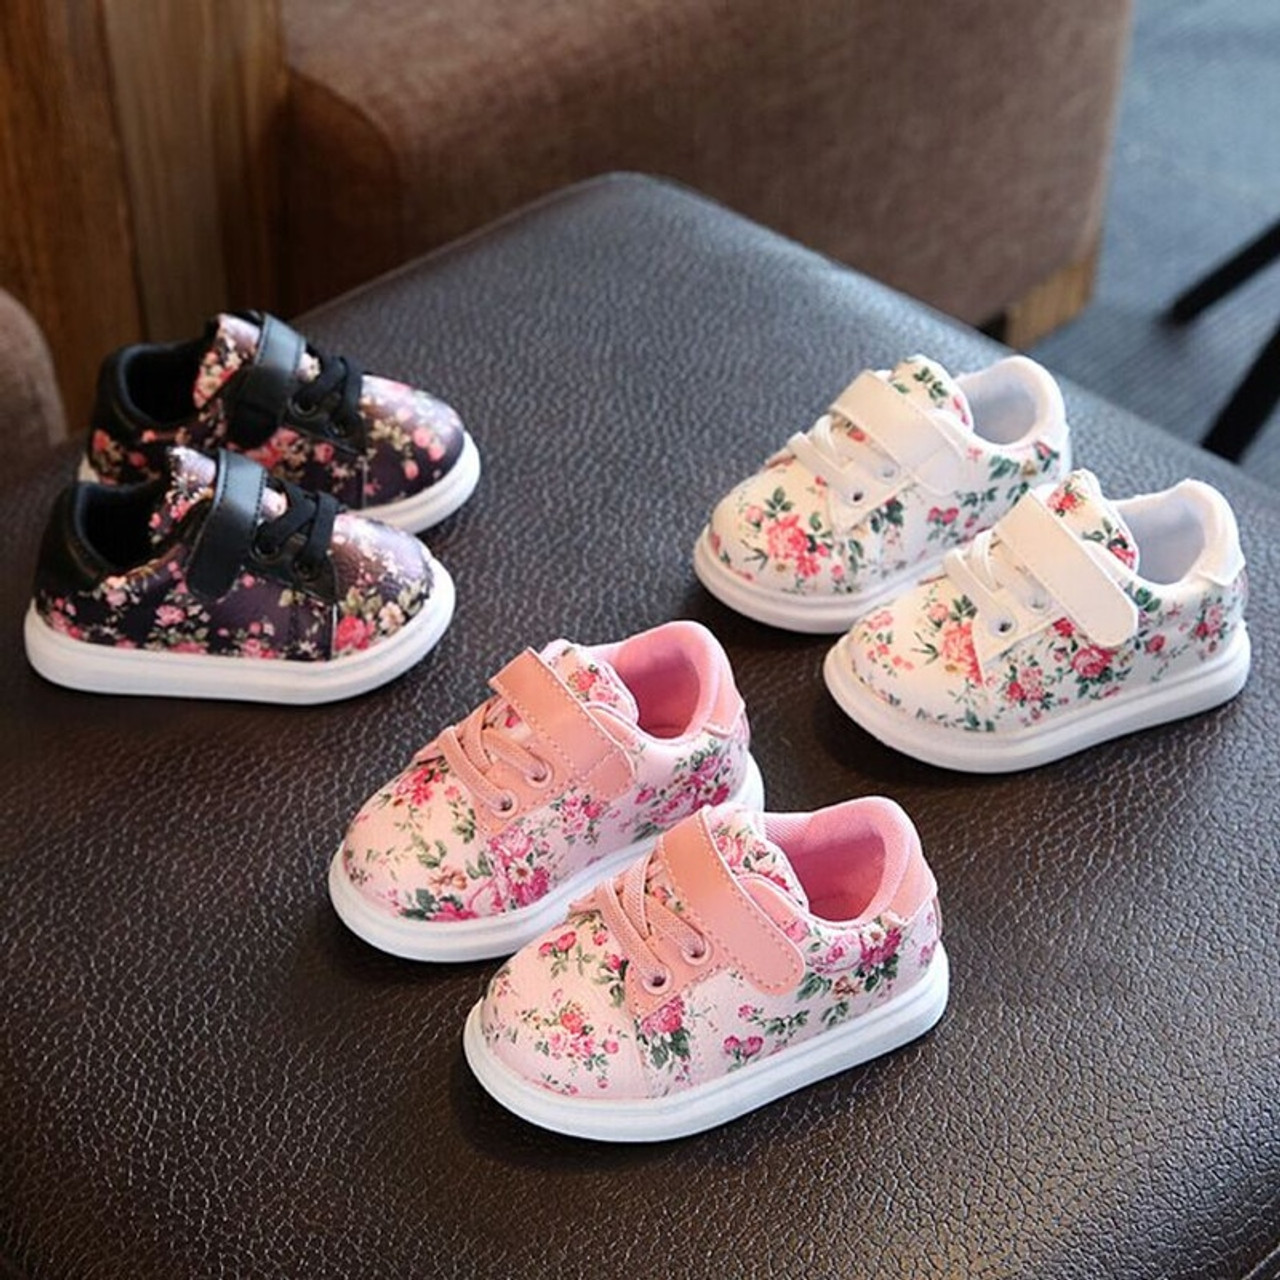 Mother & Kids Hot Sale Led Baby Shoes 2018 Fashion Lights Soft Baby Girls Shoes First Walkers Movement Led Baby Boy Shoes Spring Classic Cotton Baby Shoes